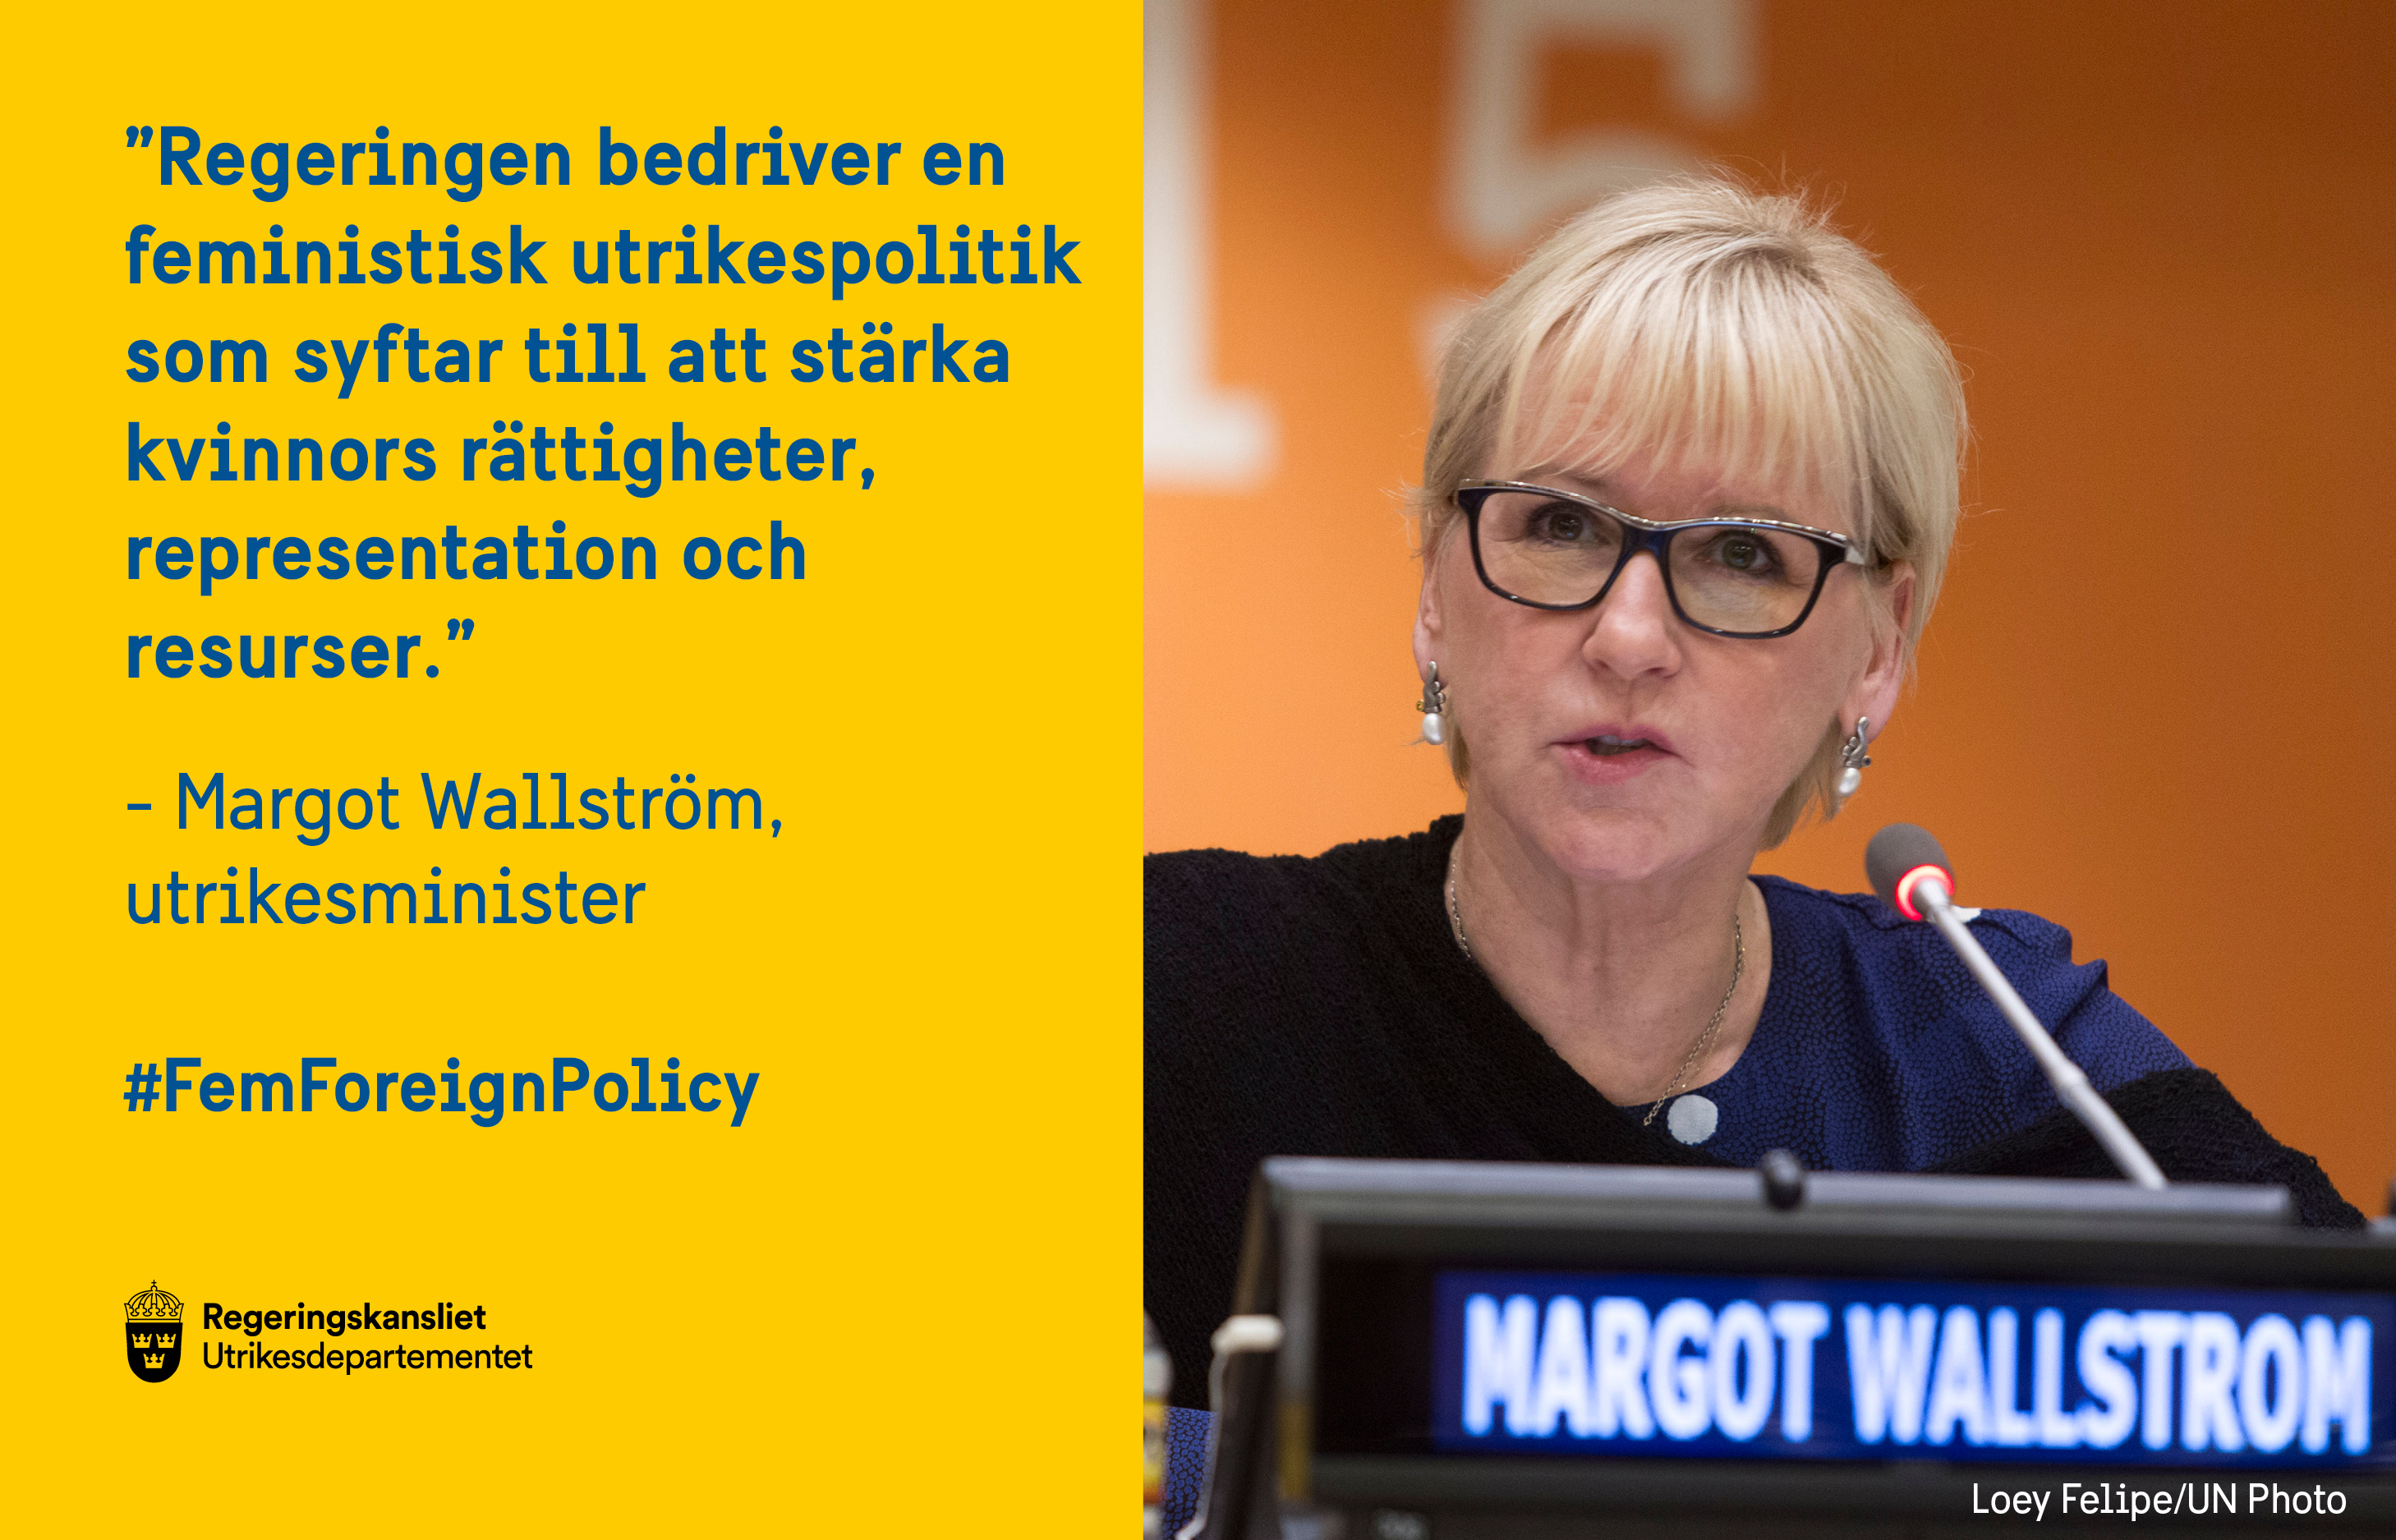 Bildtweet med utrikesminister Margot Wallström